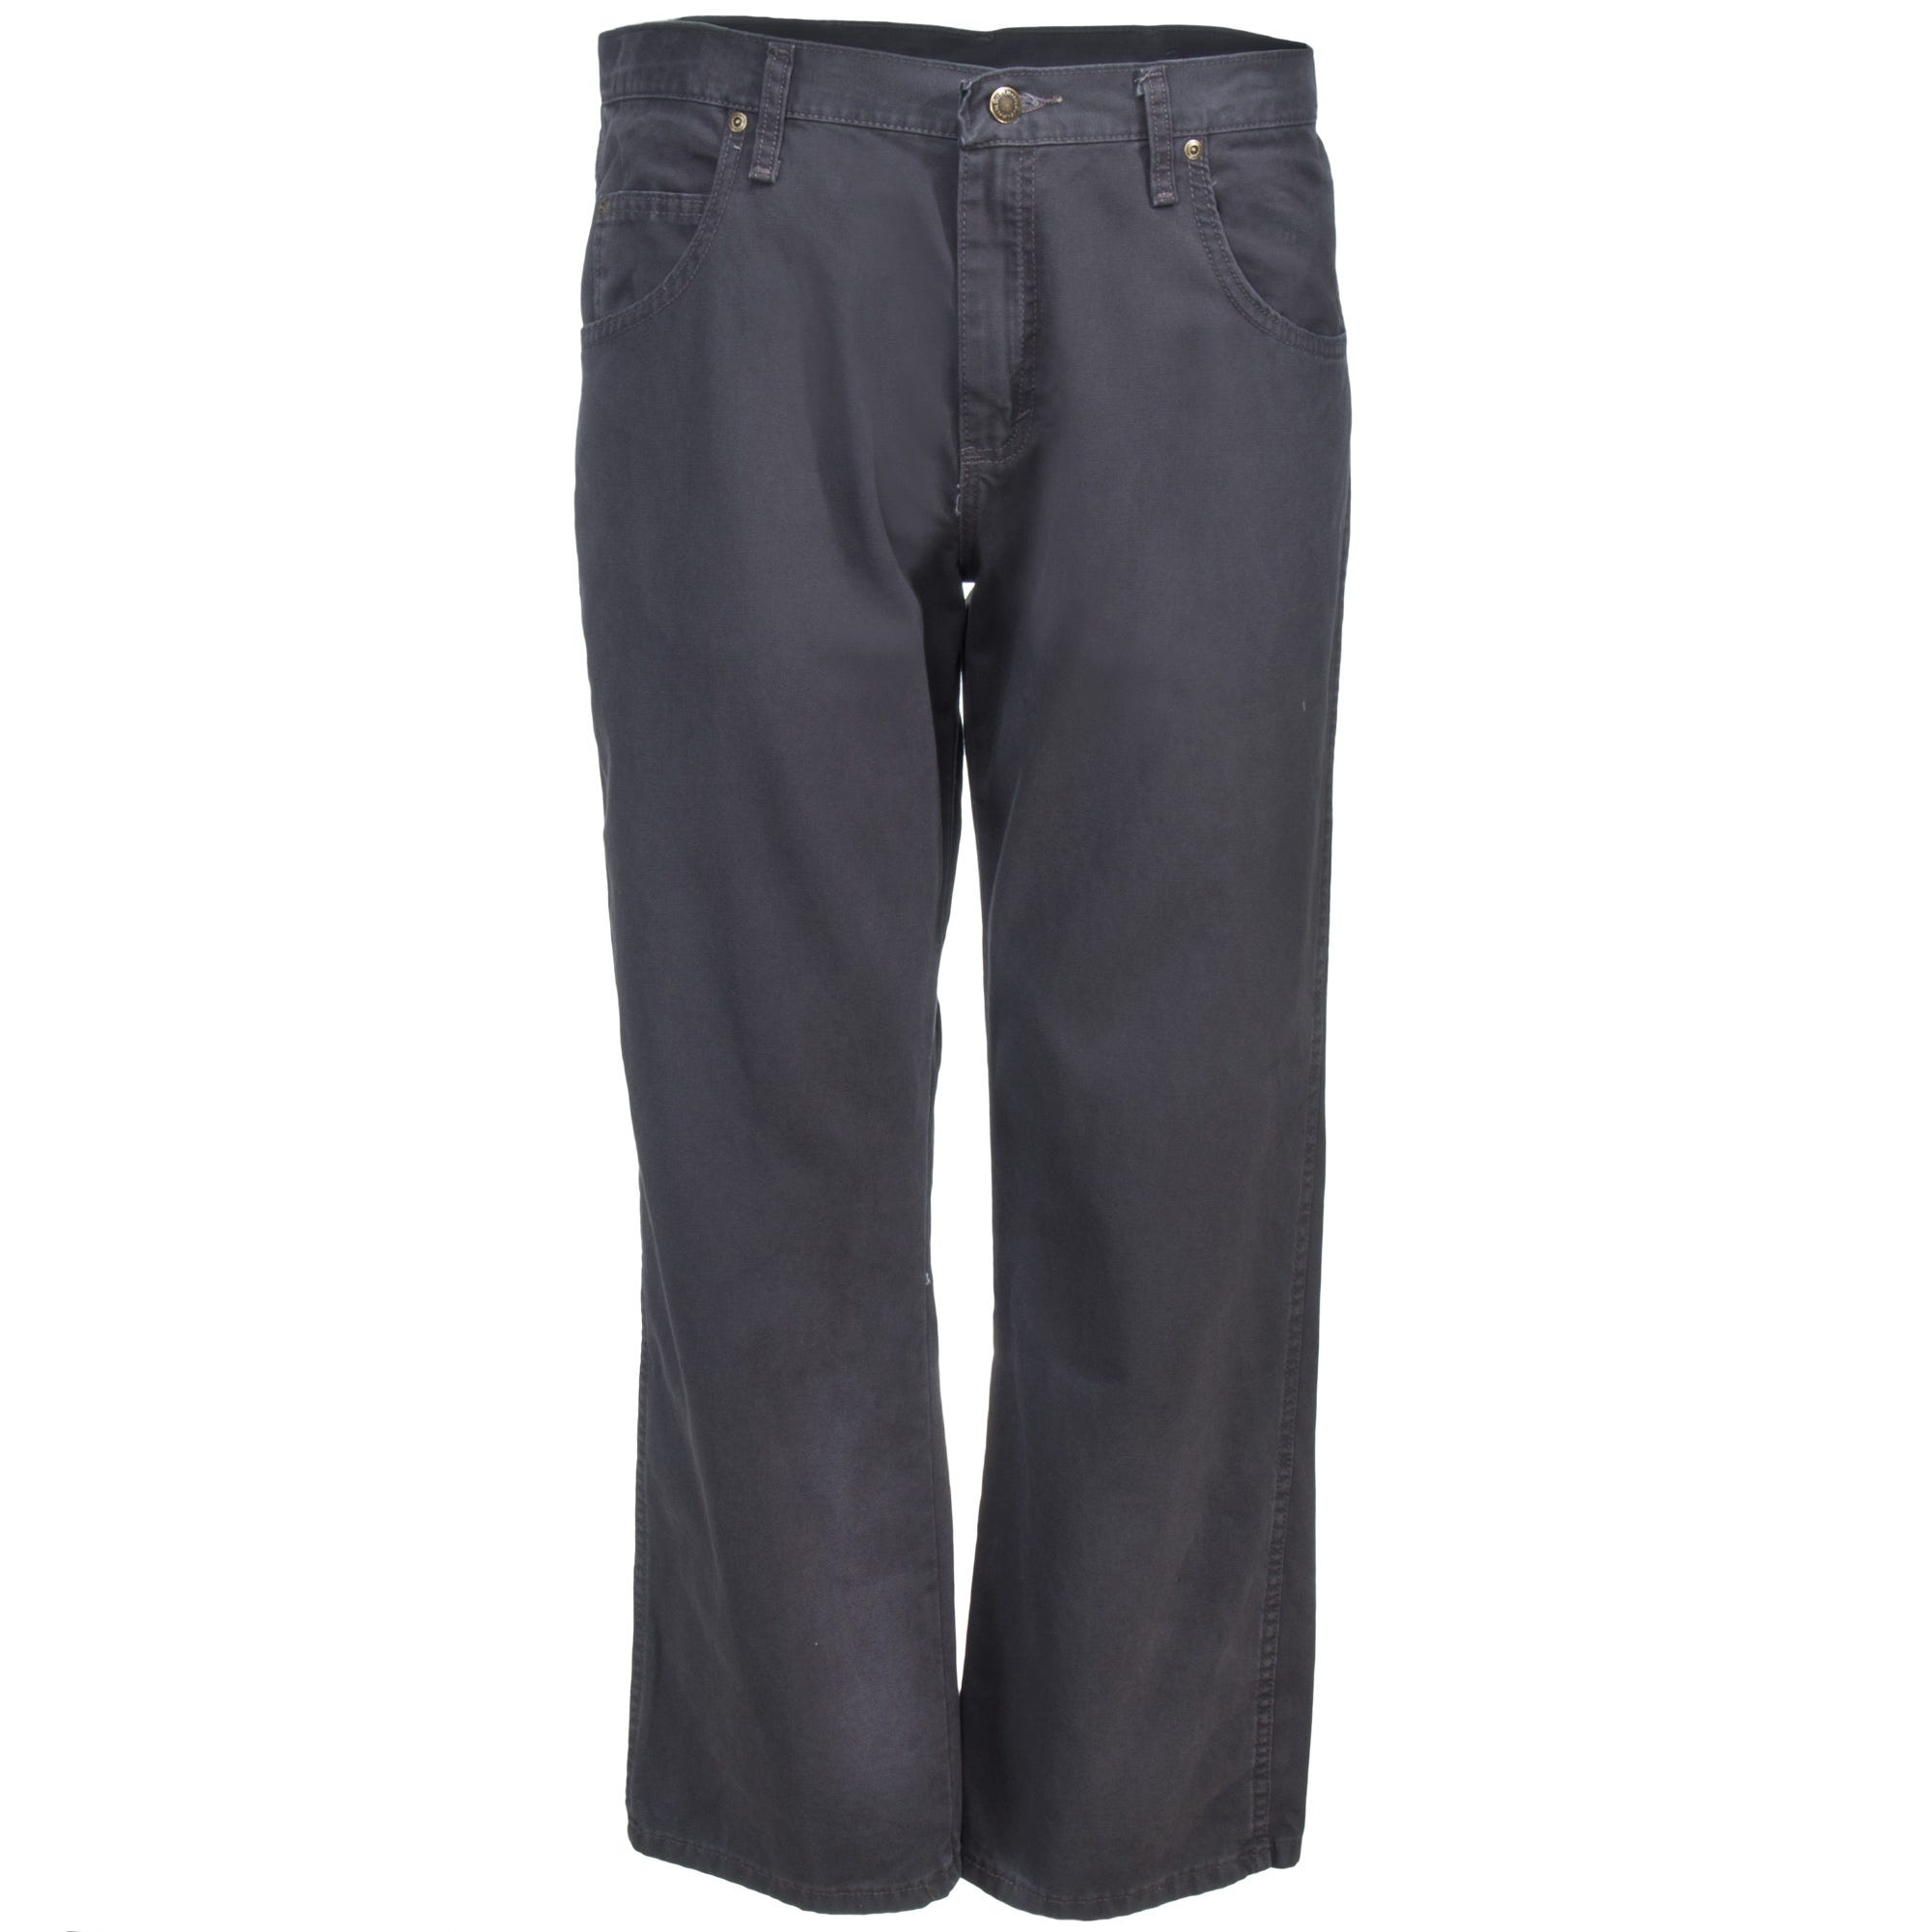 600d73eb Wrangler Pants   Men's Wrangler Pants and Jeans at MenStyle USA